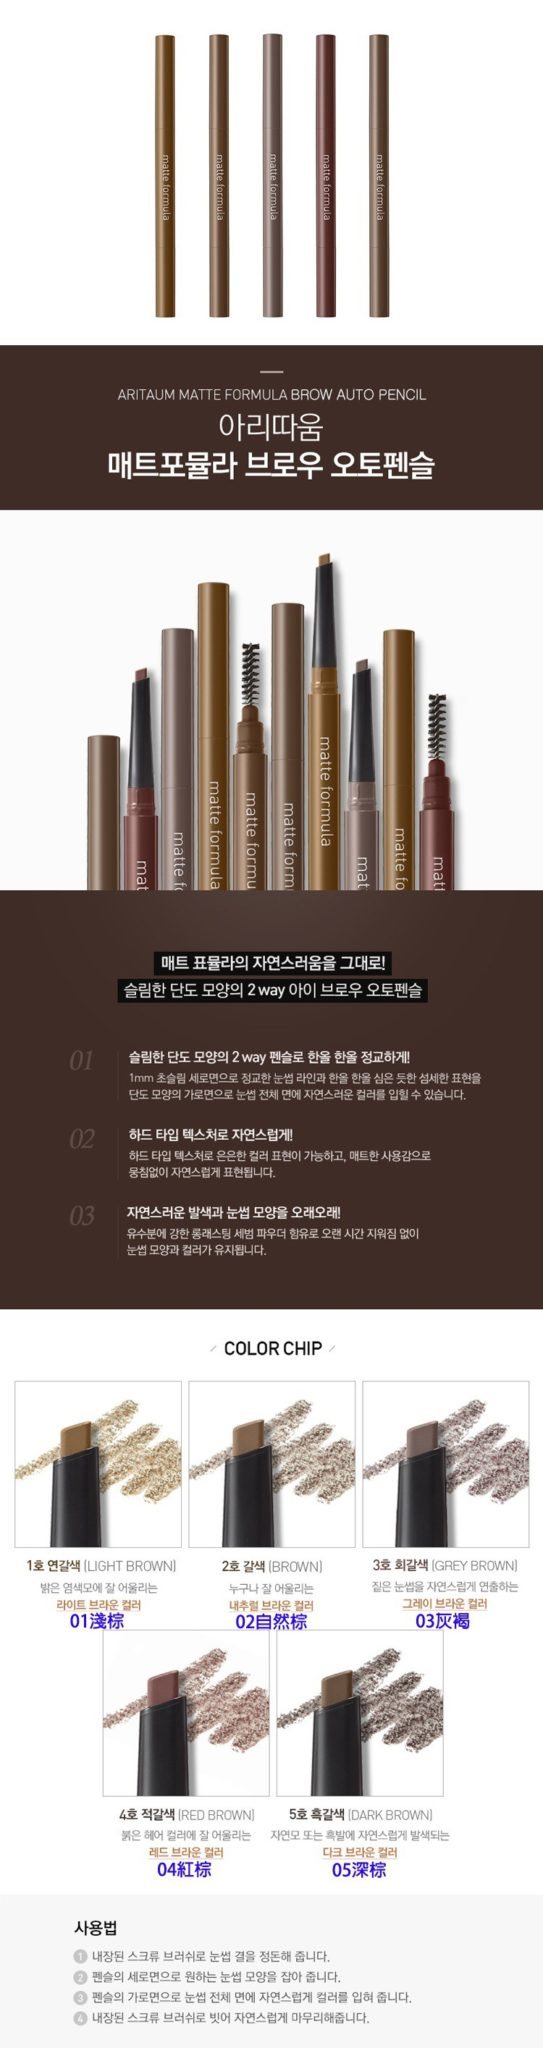 Aritaum Matte Formula Brow Auto Pencil 0.15g korean cosmetic makeup product online shop malaysia brunei philippines1